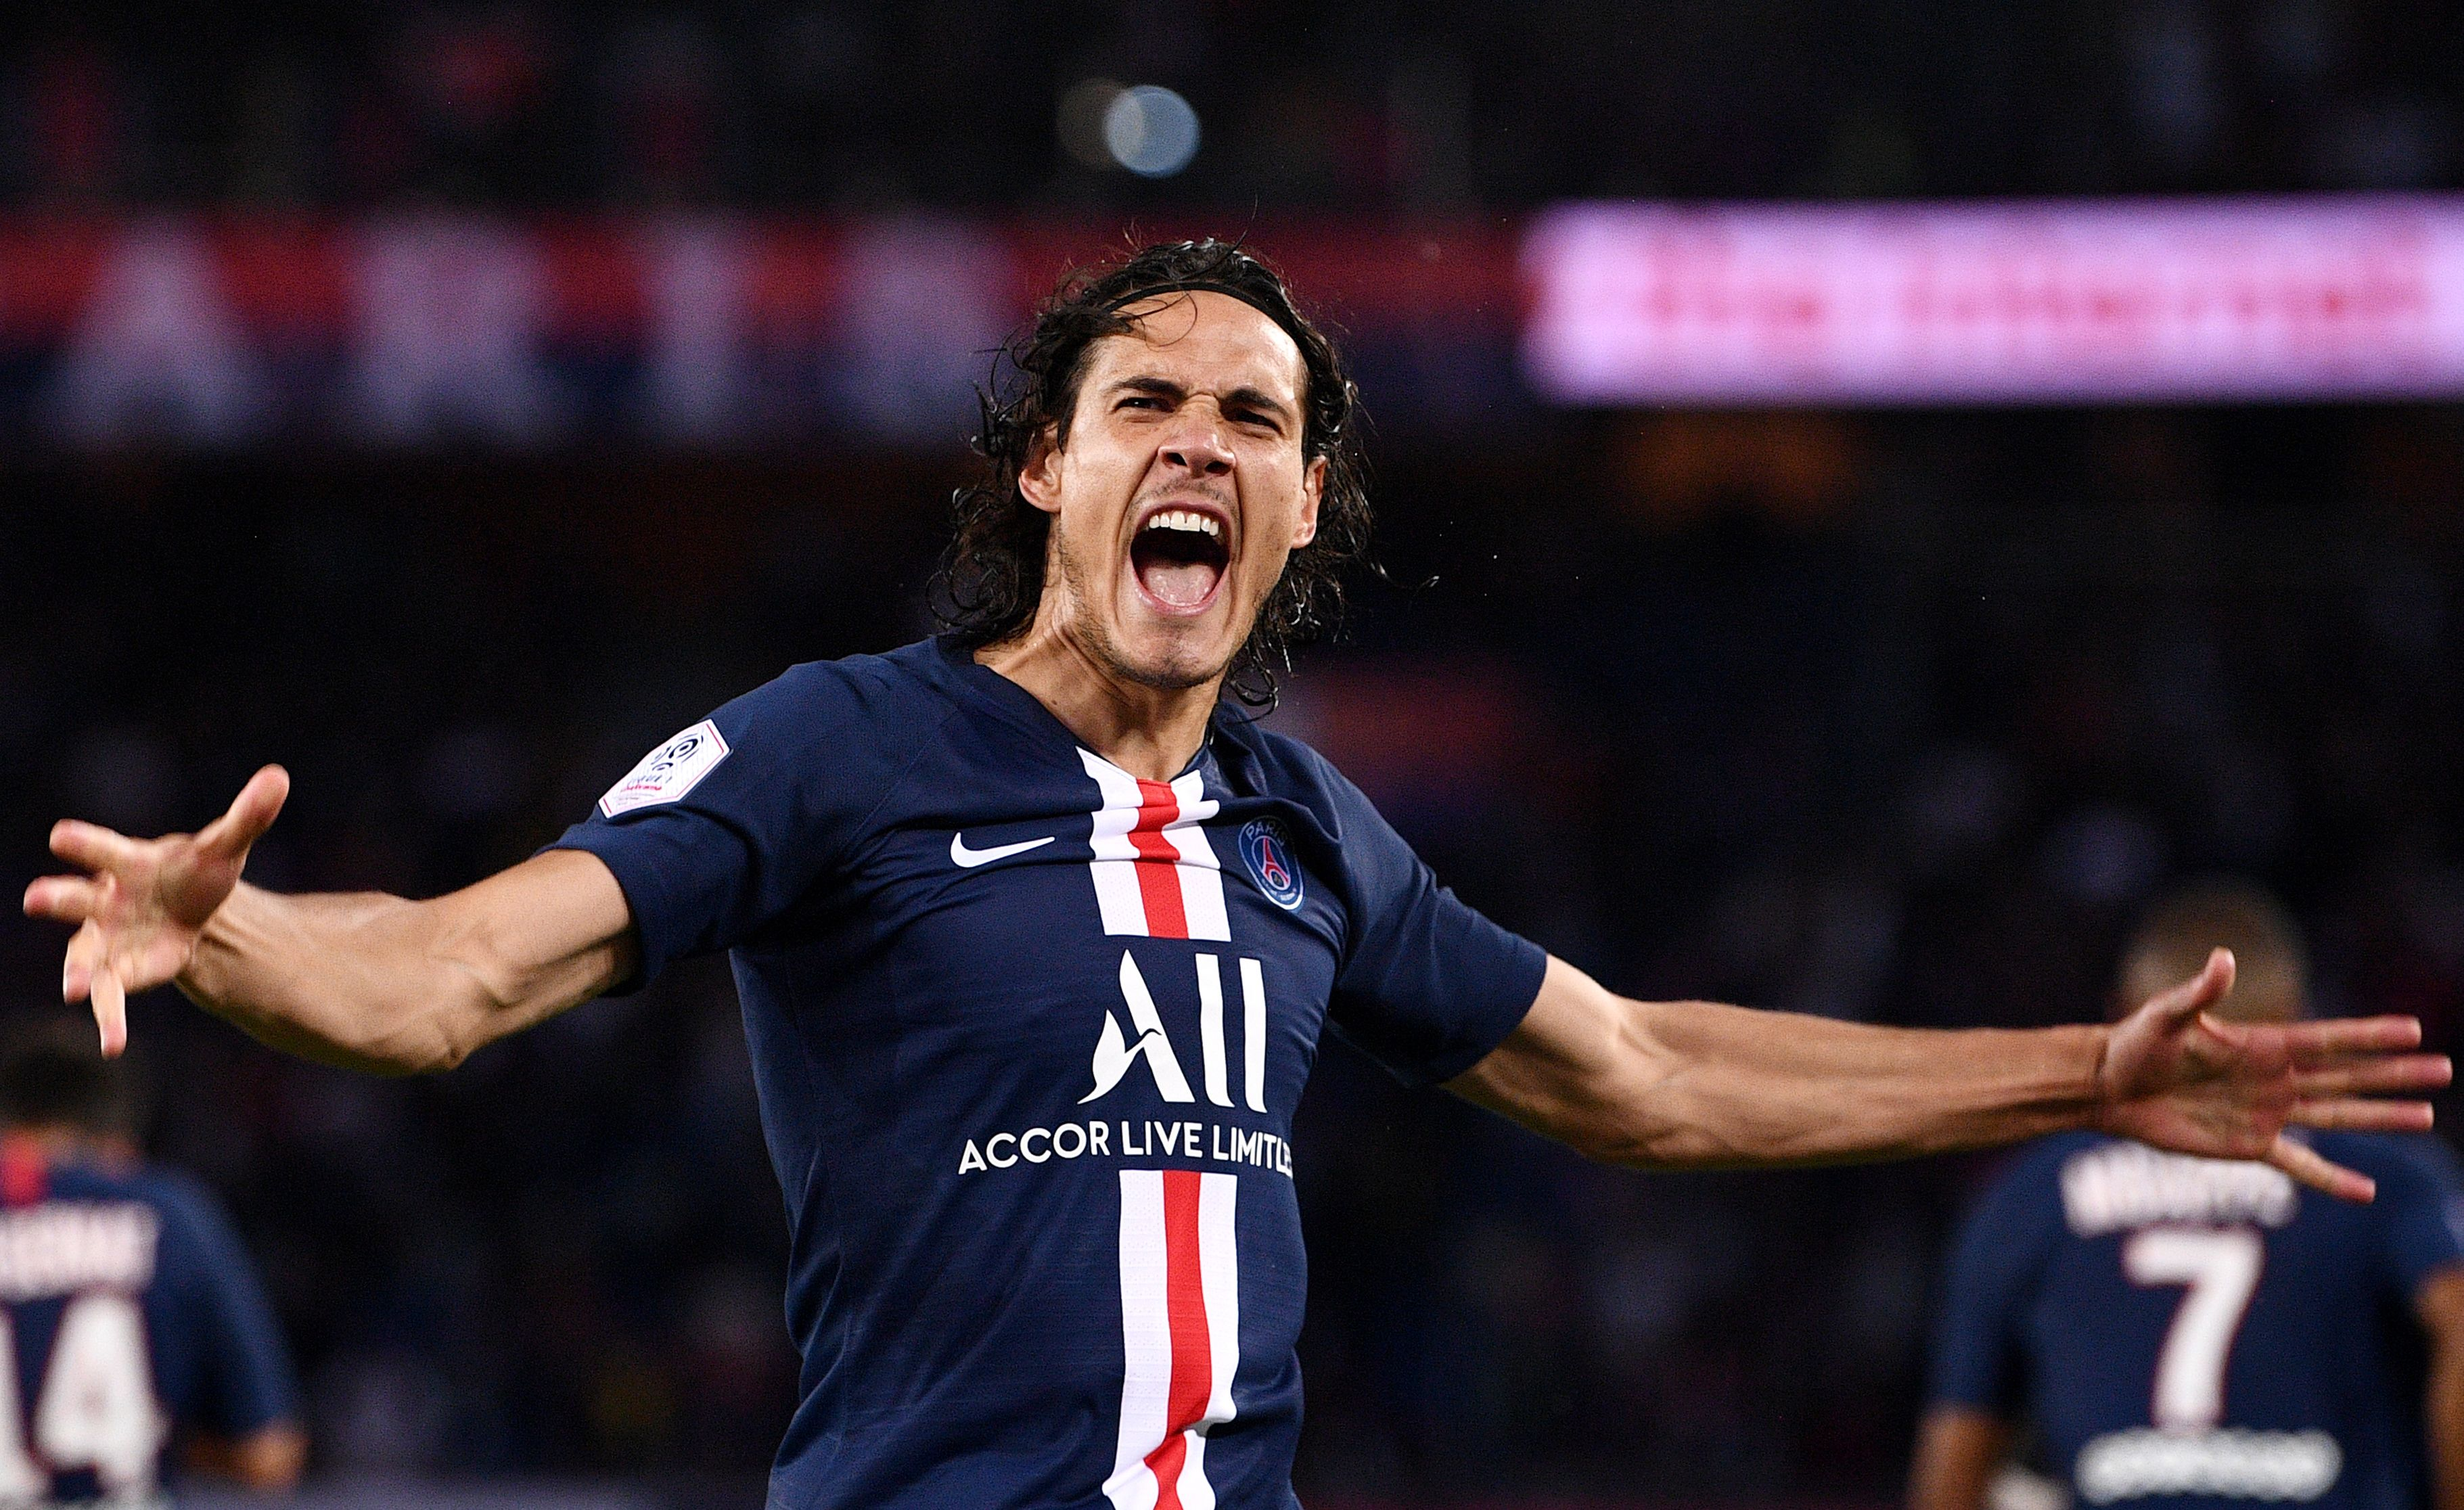 Cavani has rejected a contract offer from Manchester United (Photo credit should read FRANCK FIFE/AFP via Getty Images)